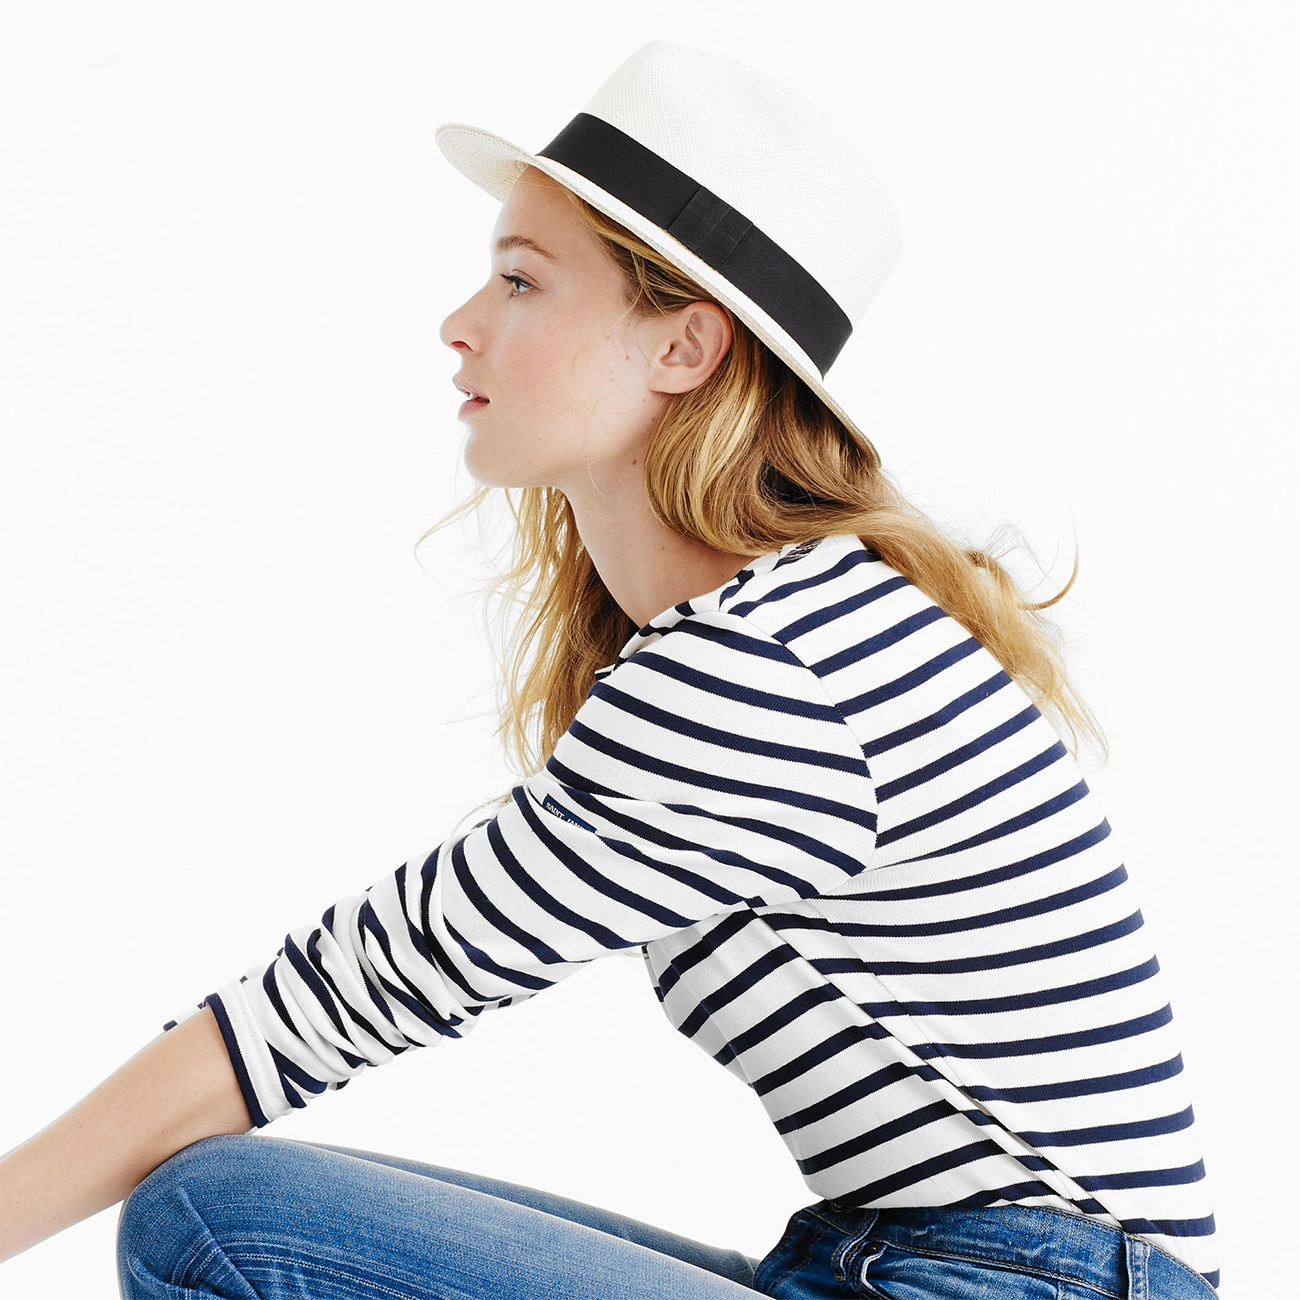 JCrew Panama Hat and JCrew Striped Shirt